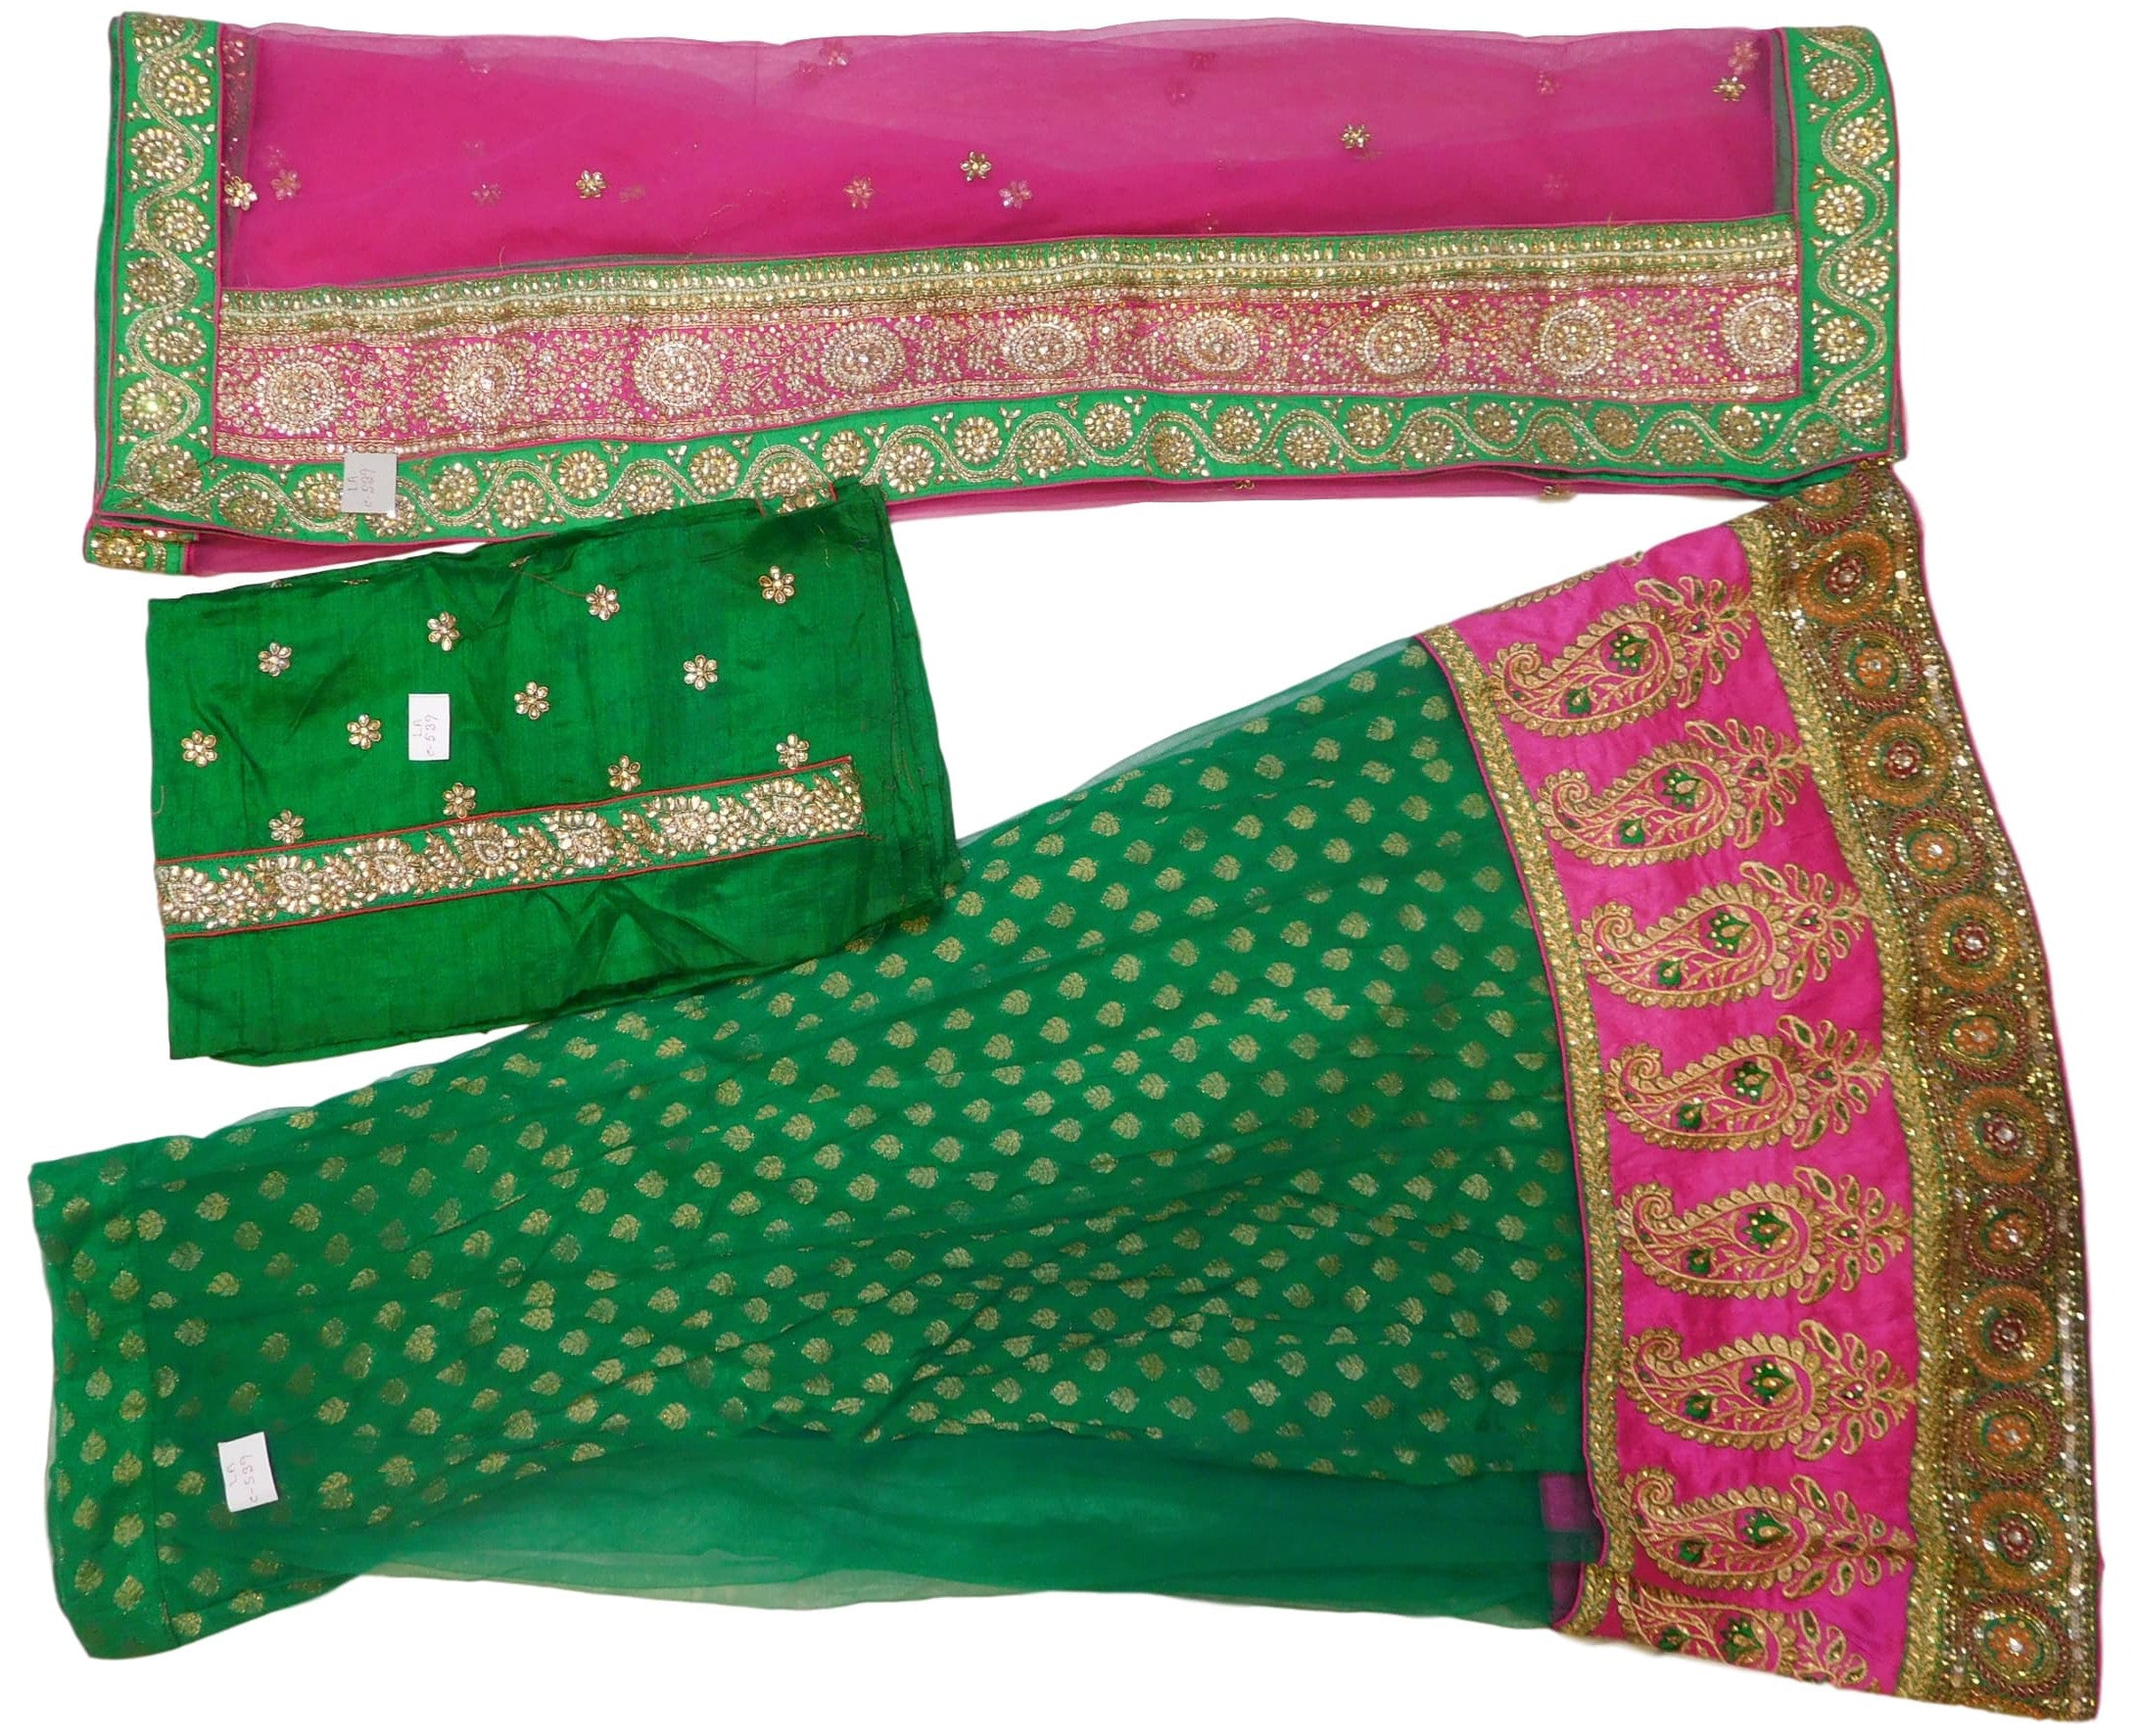 Pink & Green Designer Bridal Hand Embroidery Lahenga Work With Net Dupatta & Silk Blouse